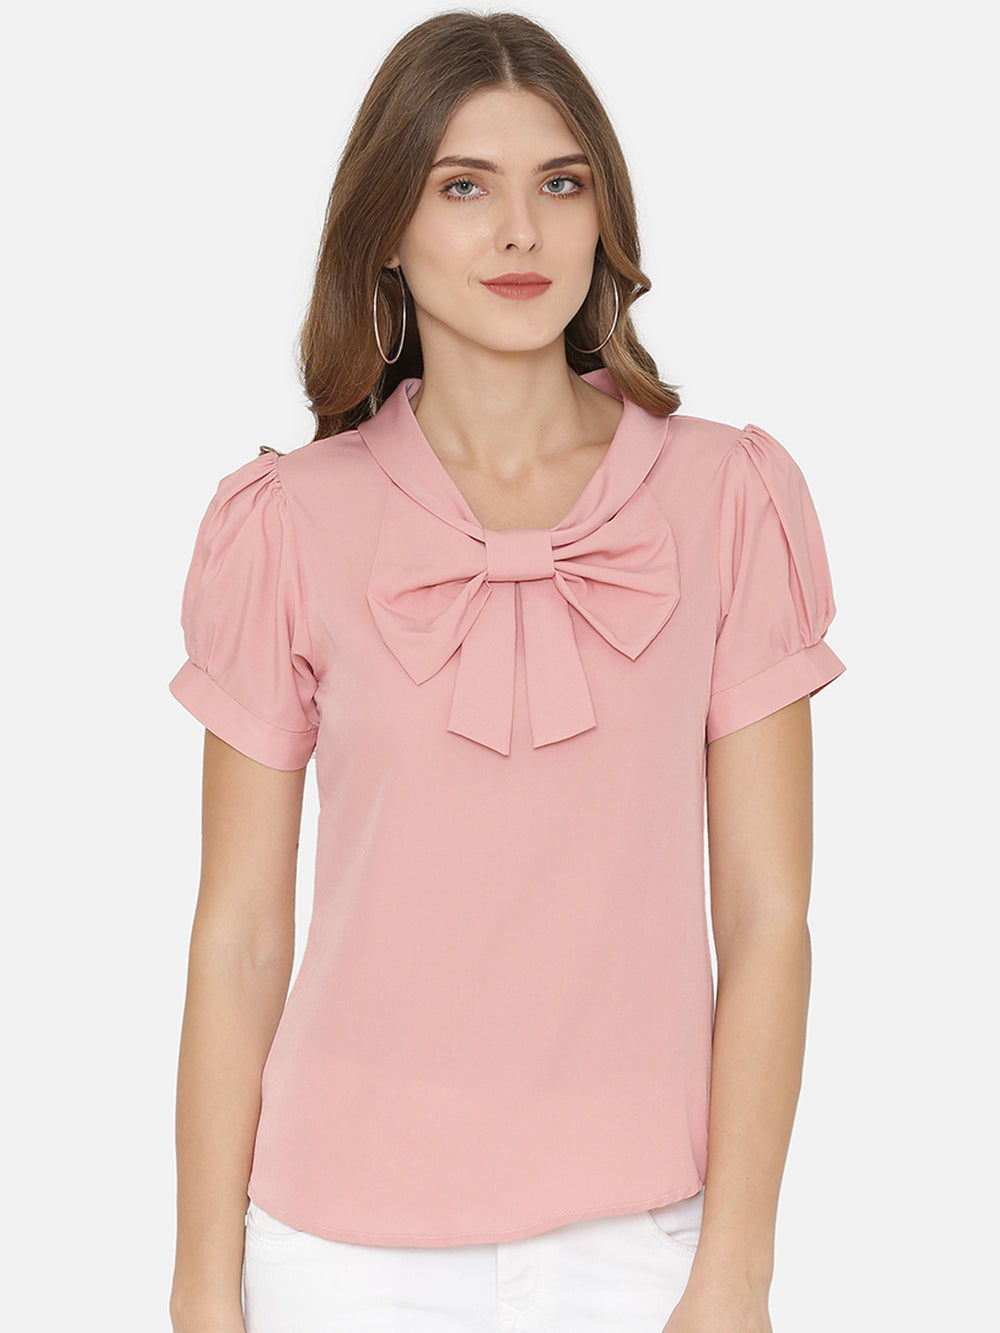 eyelet Women Pink Solid Top